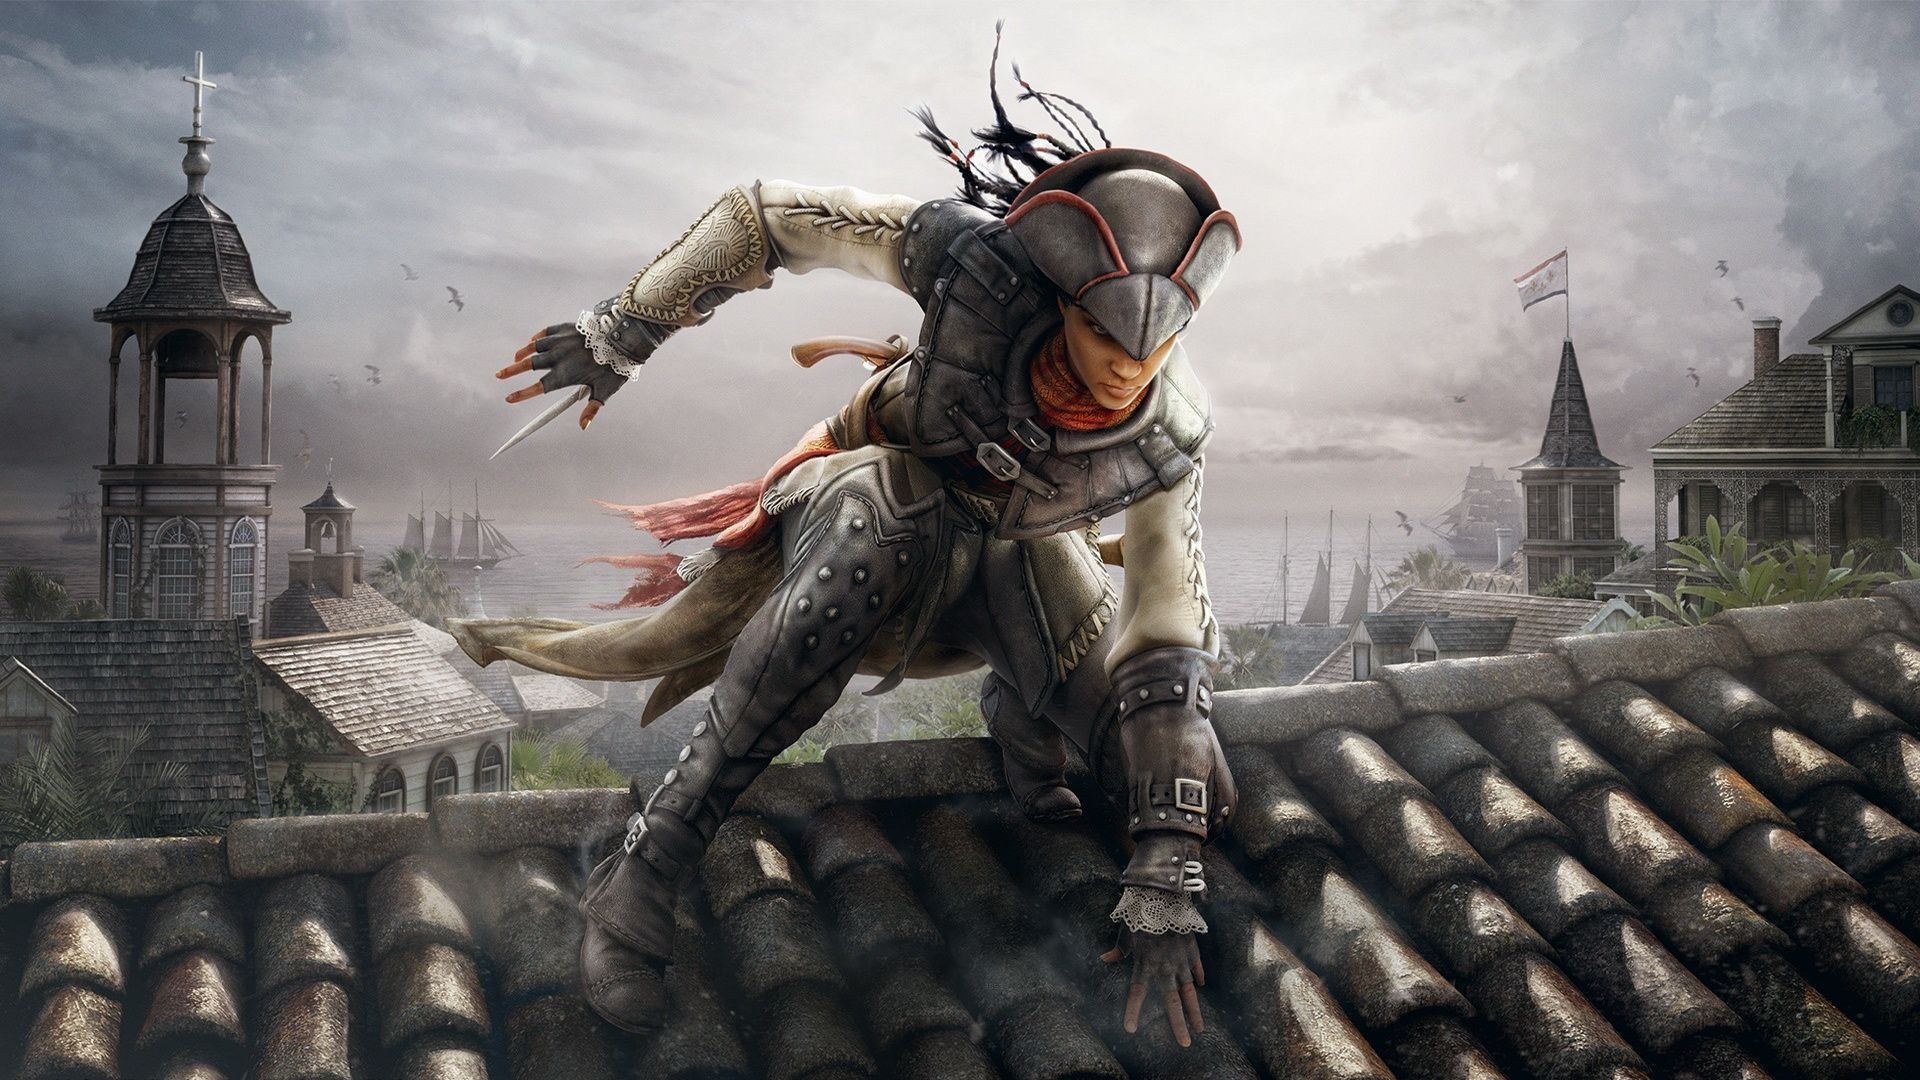 assassin creed 3 free download for xbox 360